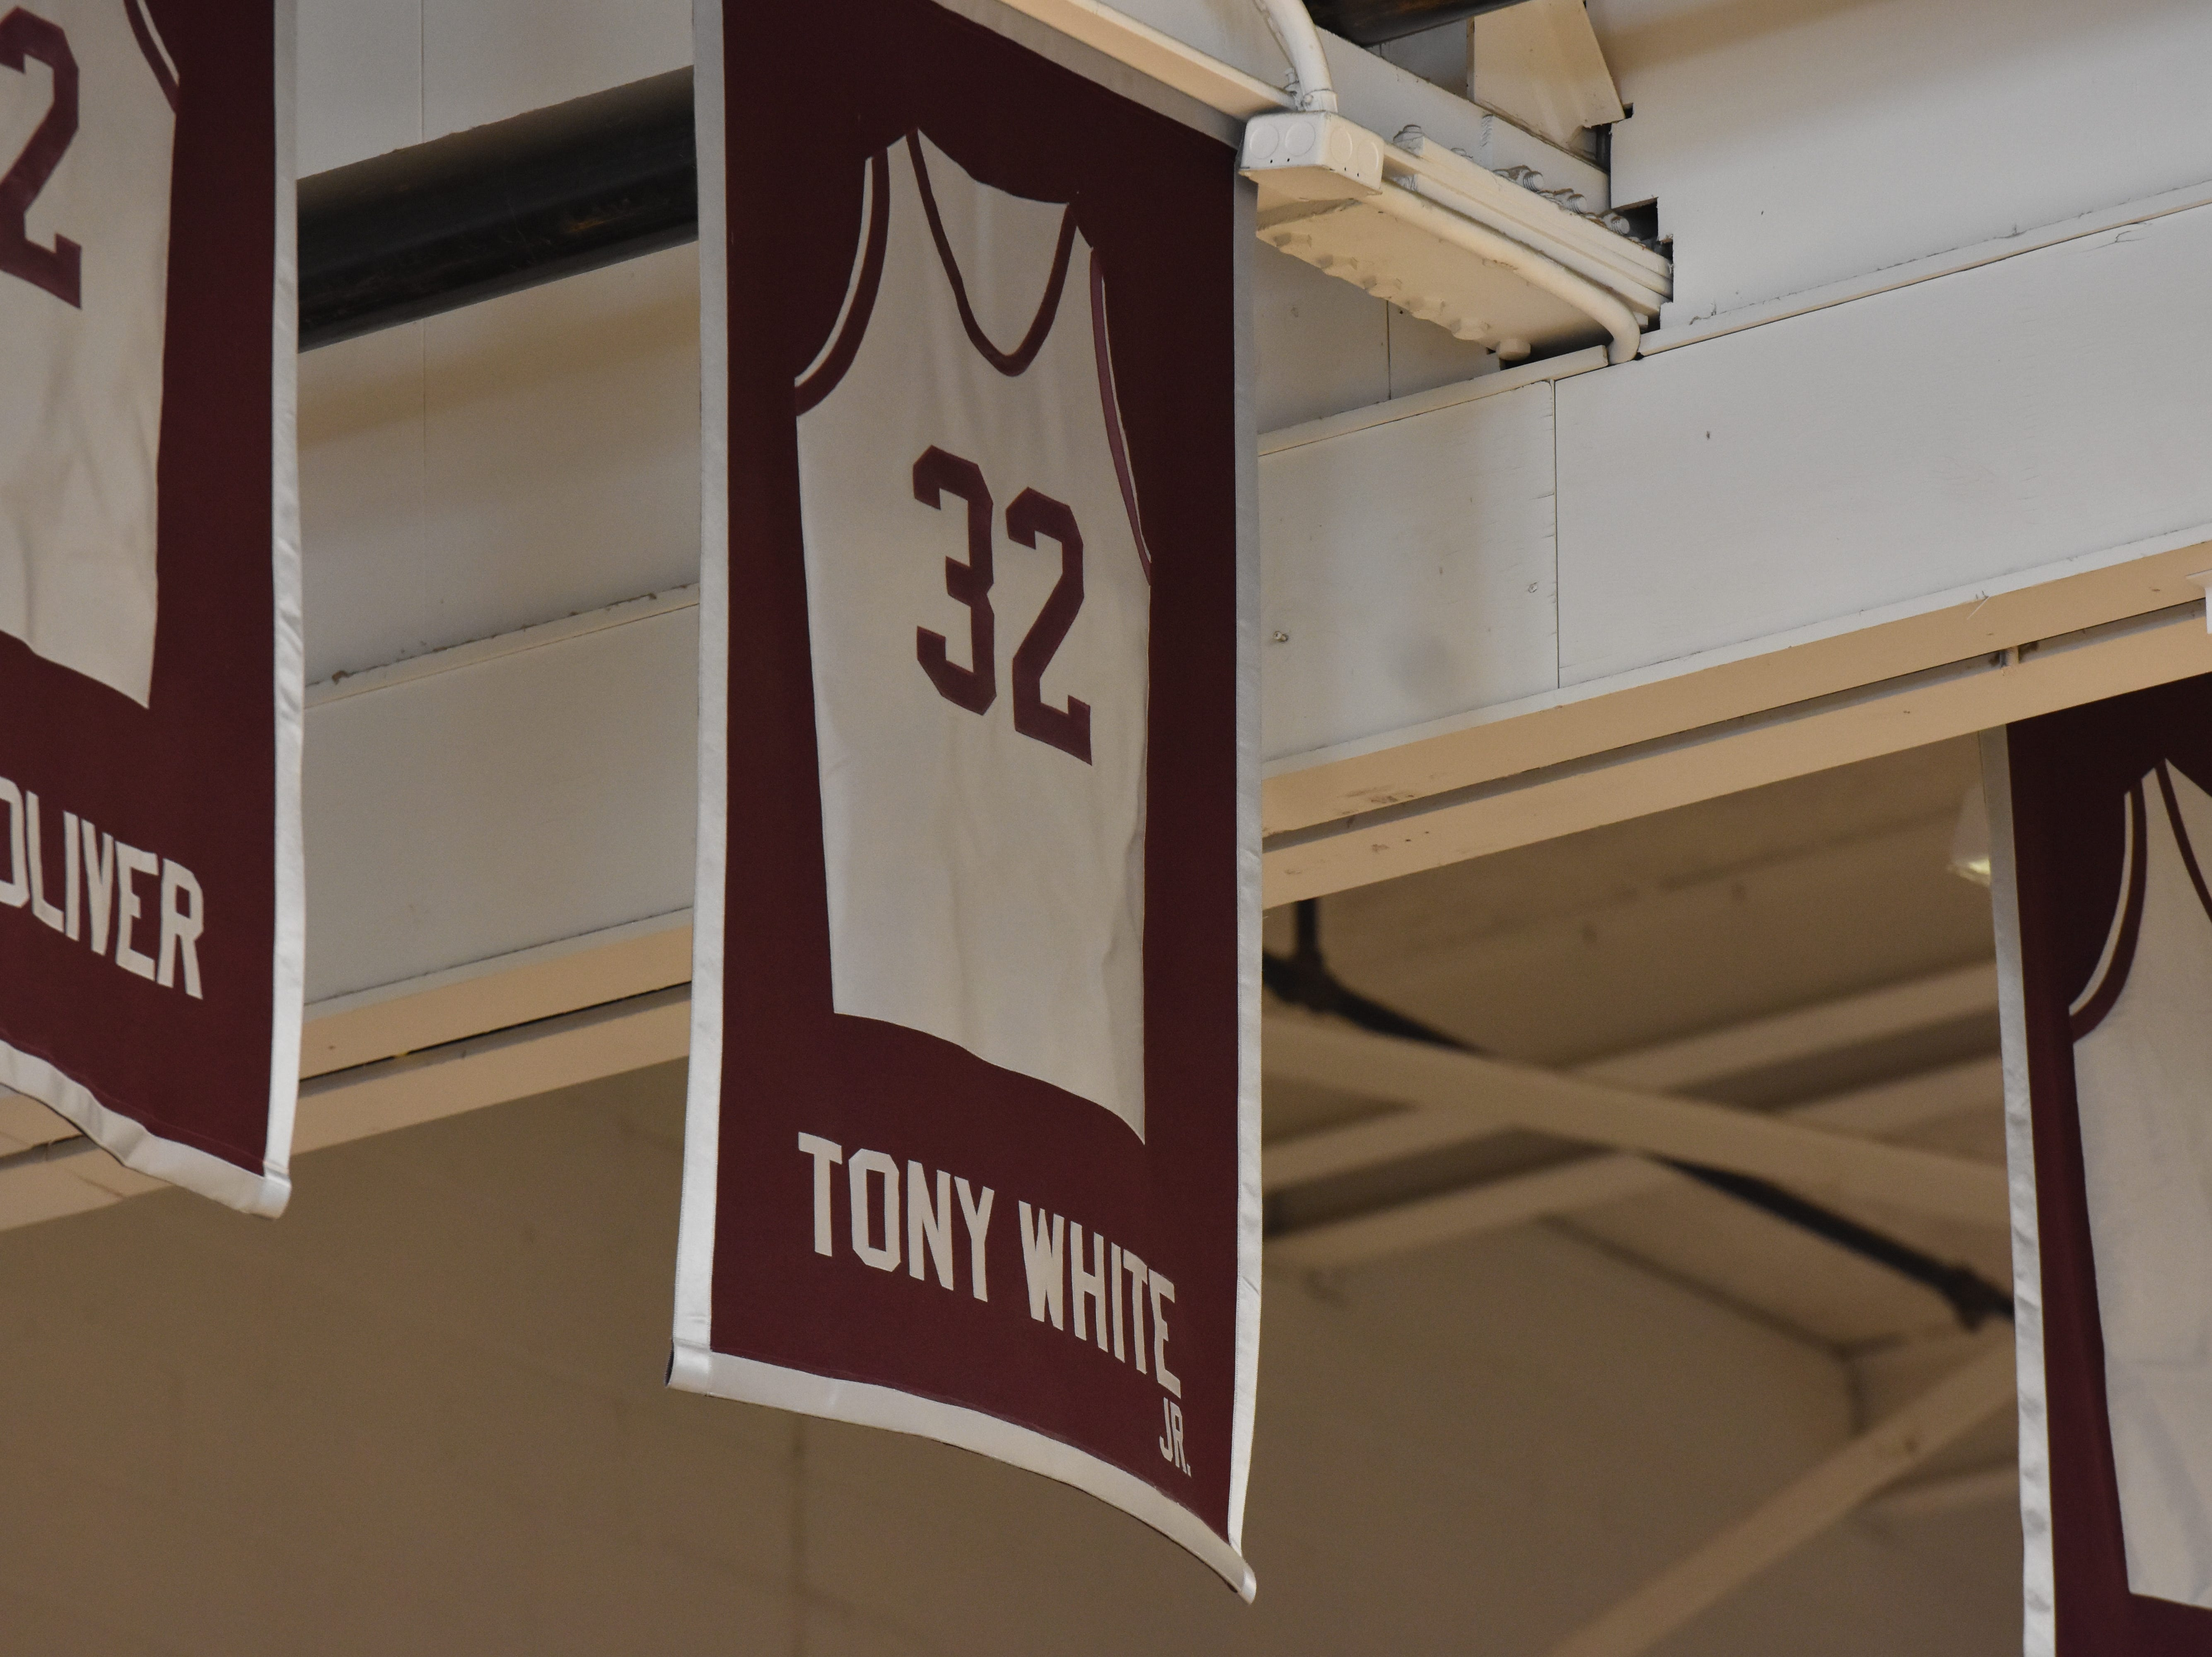 The jerseys of former Bearden High basketball players hang from the rafters of the gym.